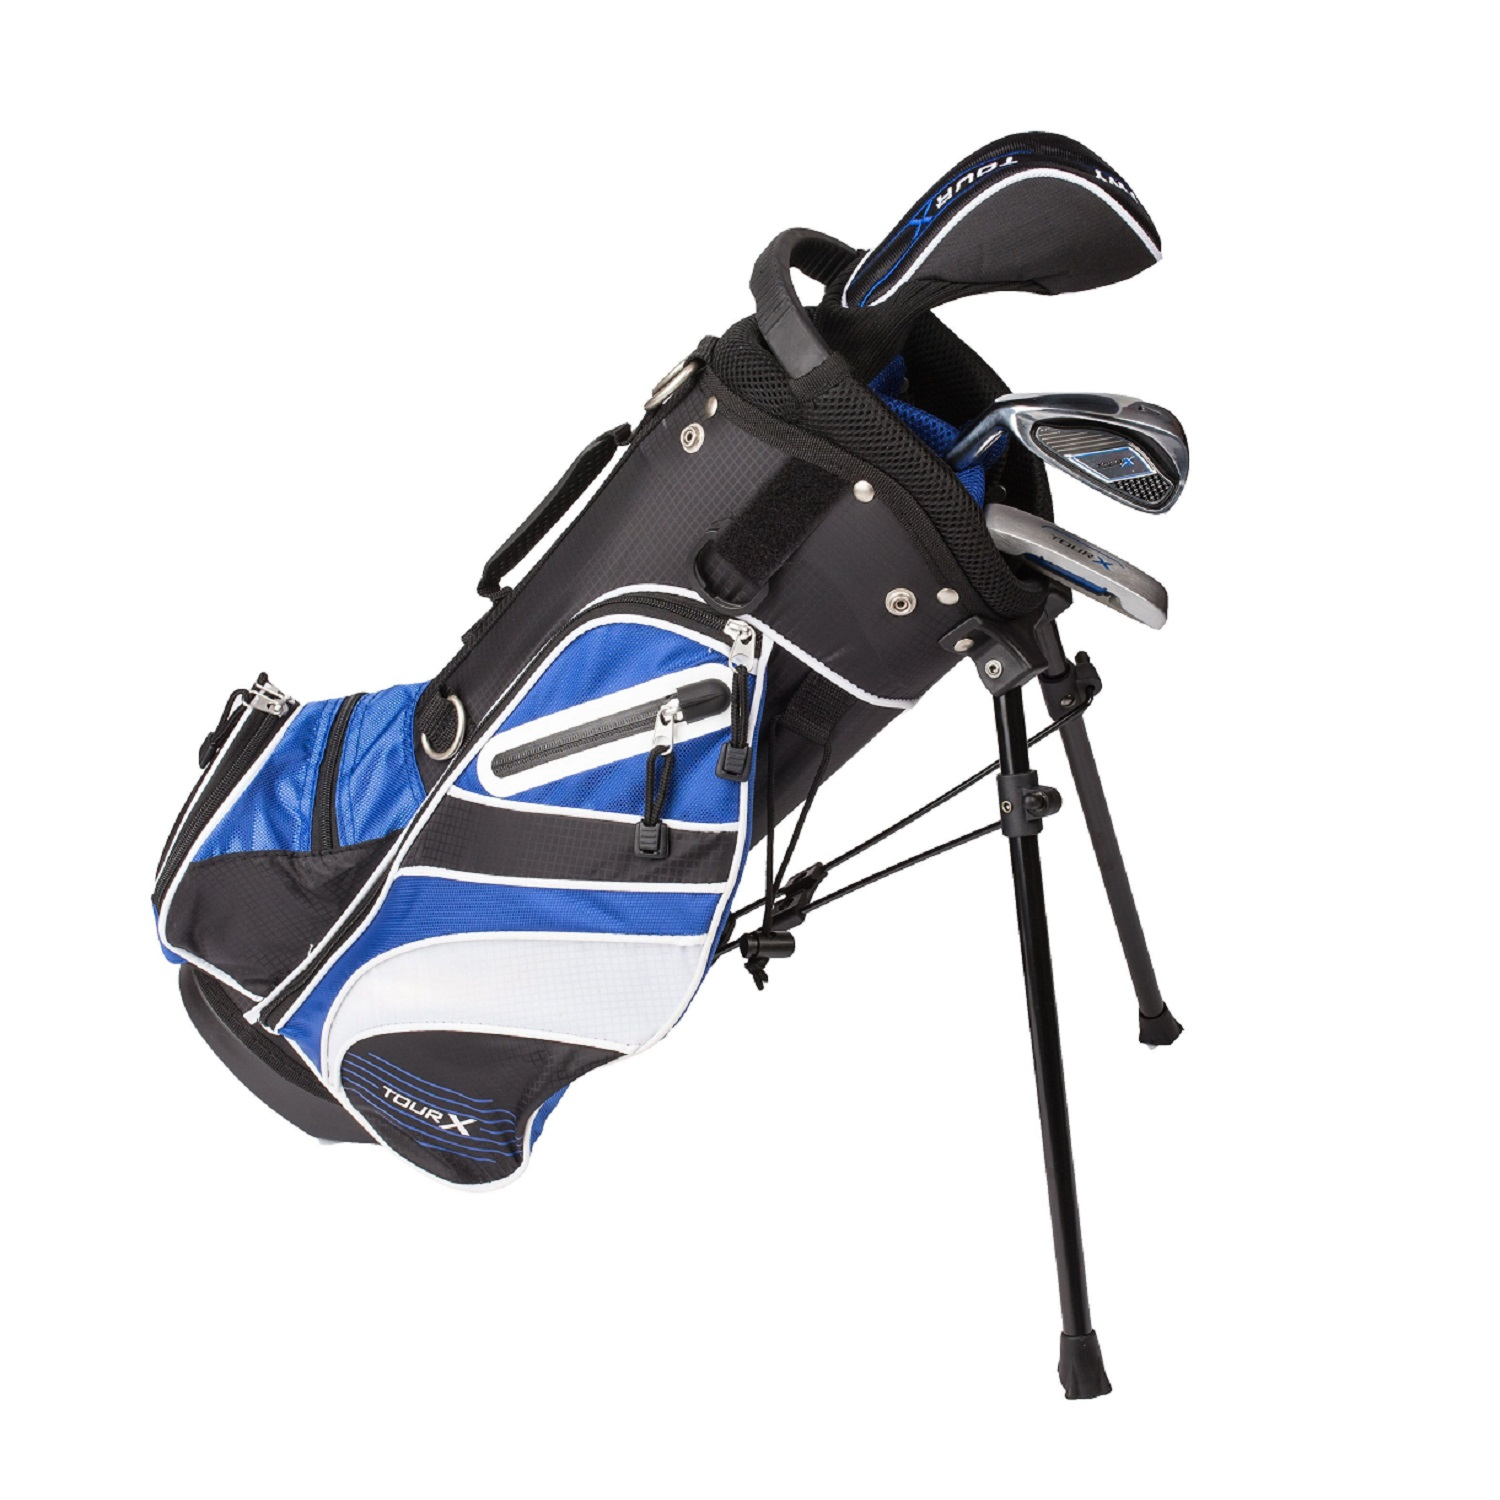 Tour X Size 0 3pc Jr Golf Set w/Stand Bag LH